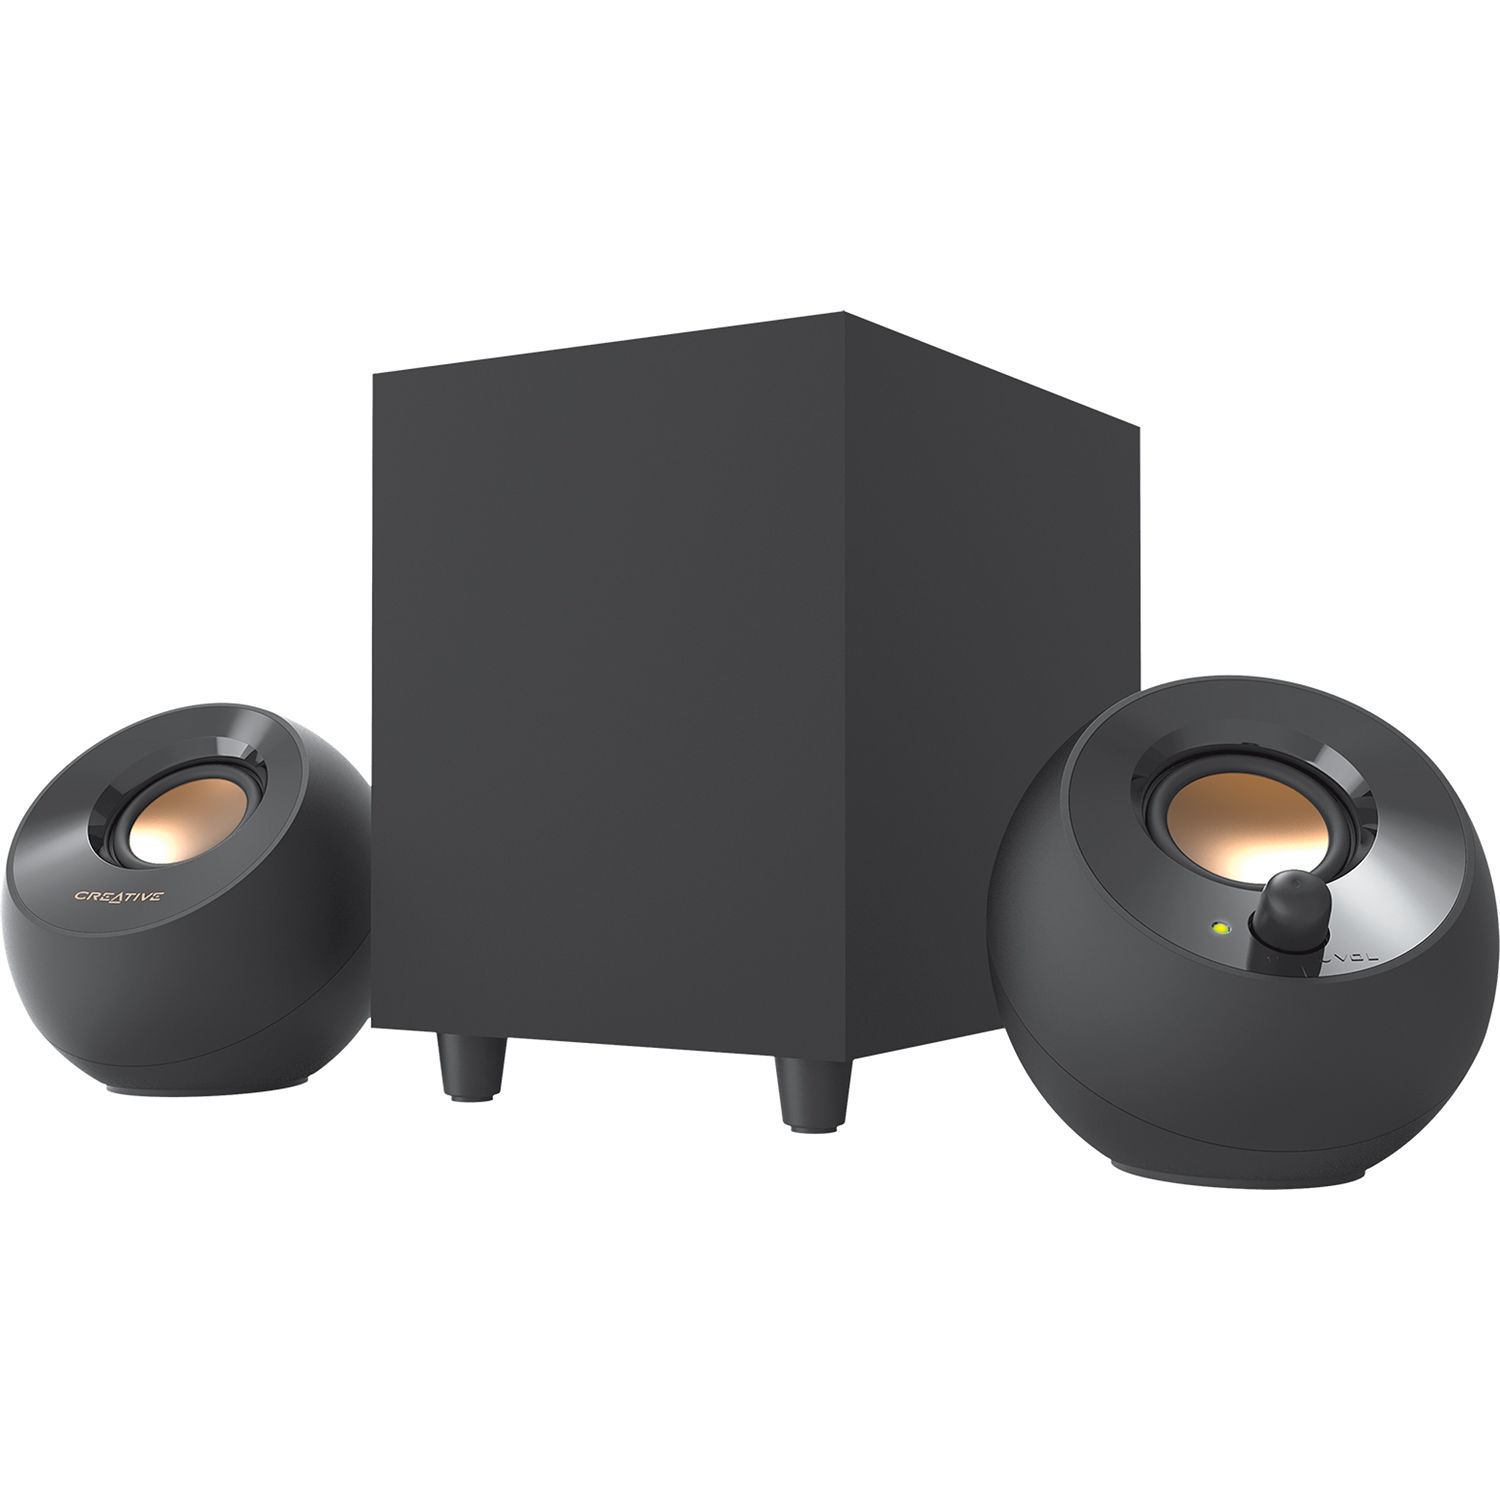 Creative Labs Pebble Plus 2 1-Channel Desktop Speakers with Subwoofer